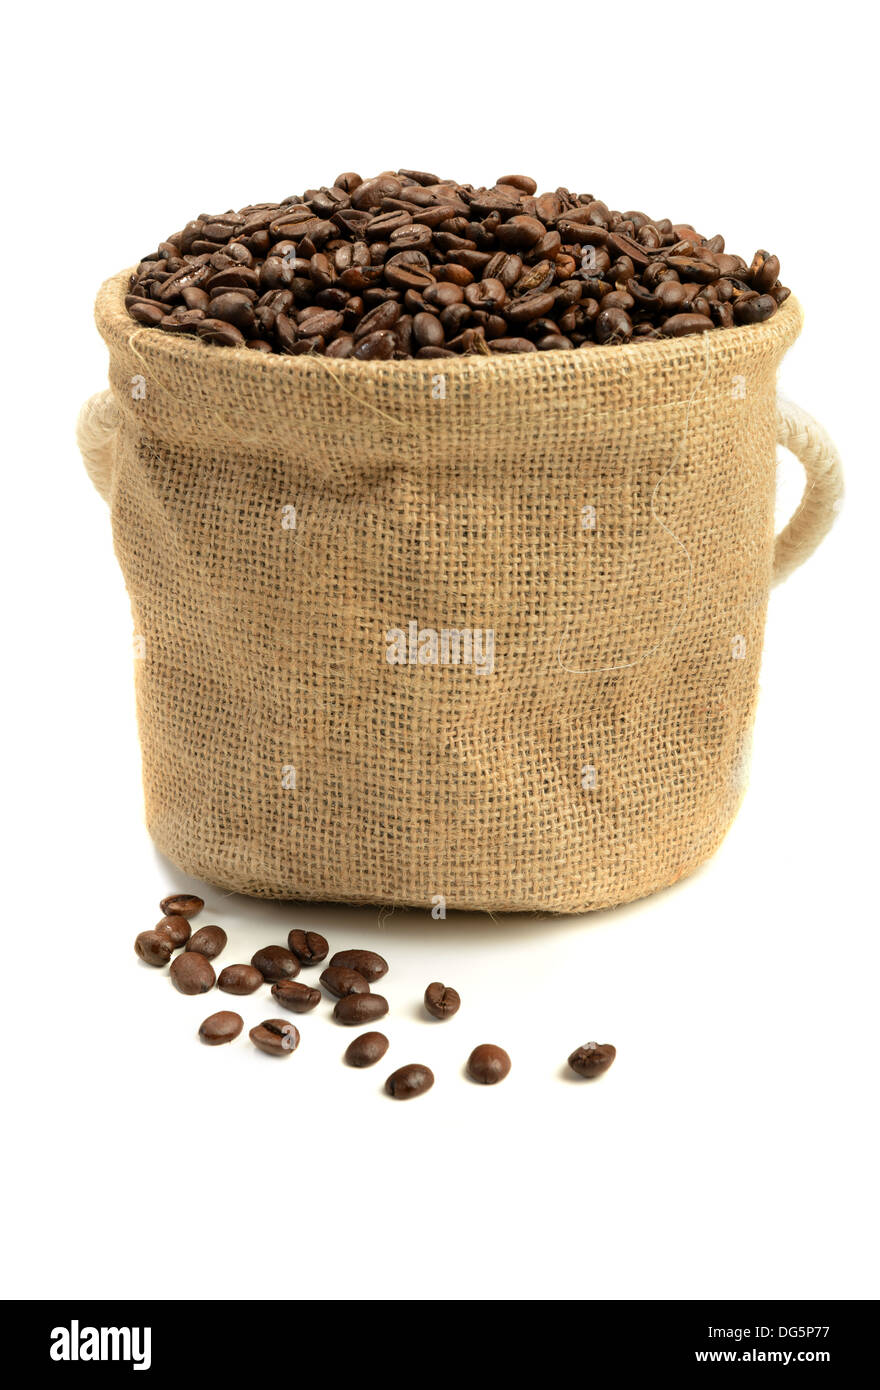 Coffee beans in canvas sack - Stock Image